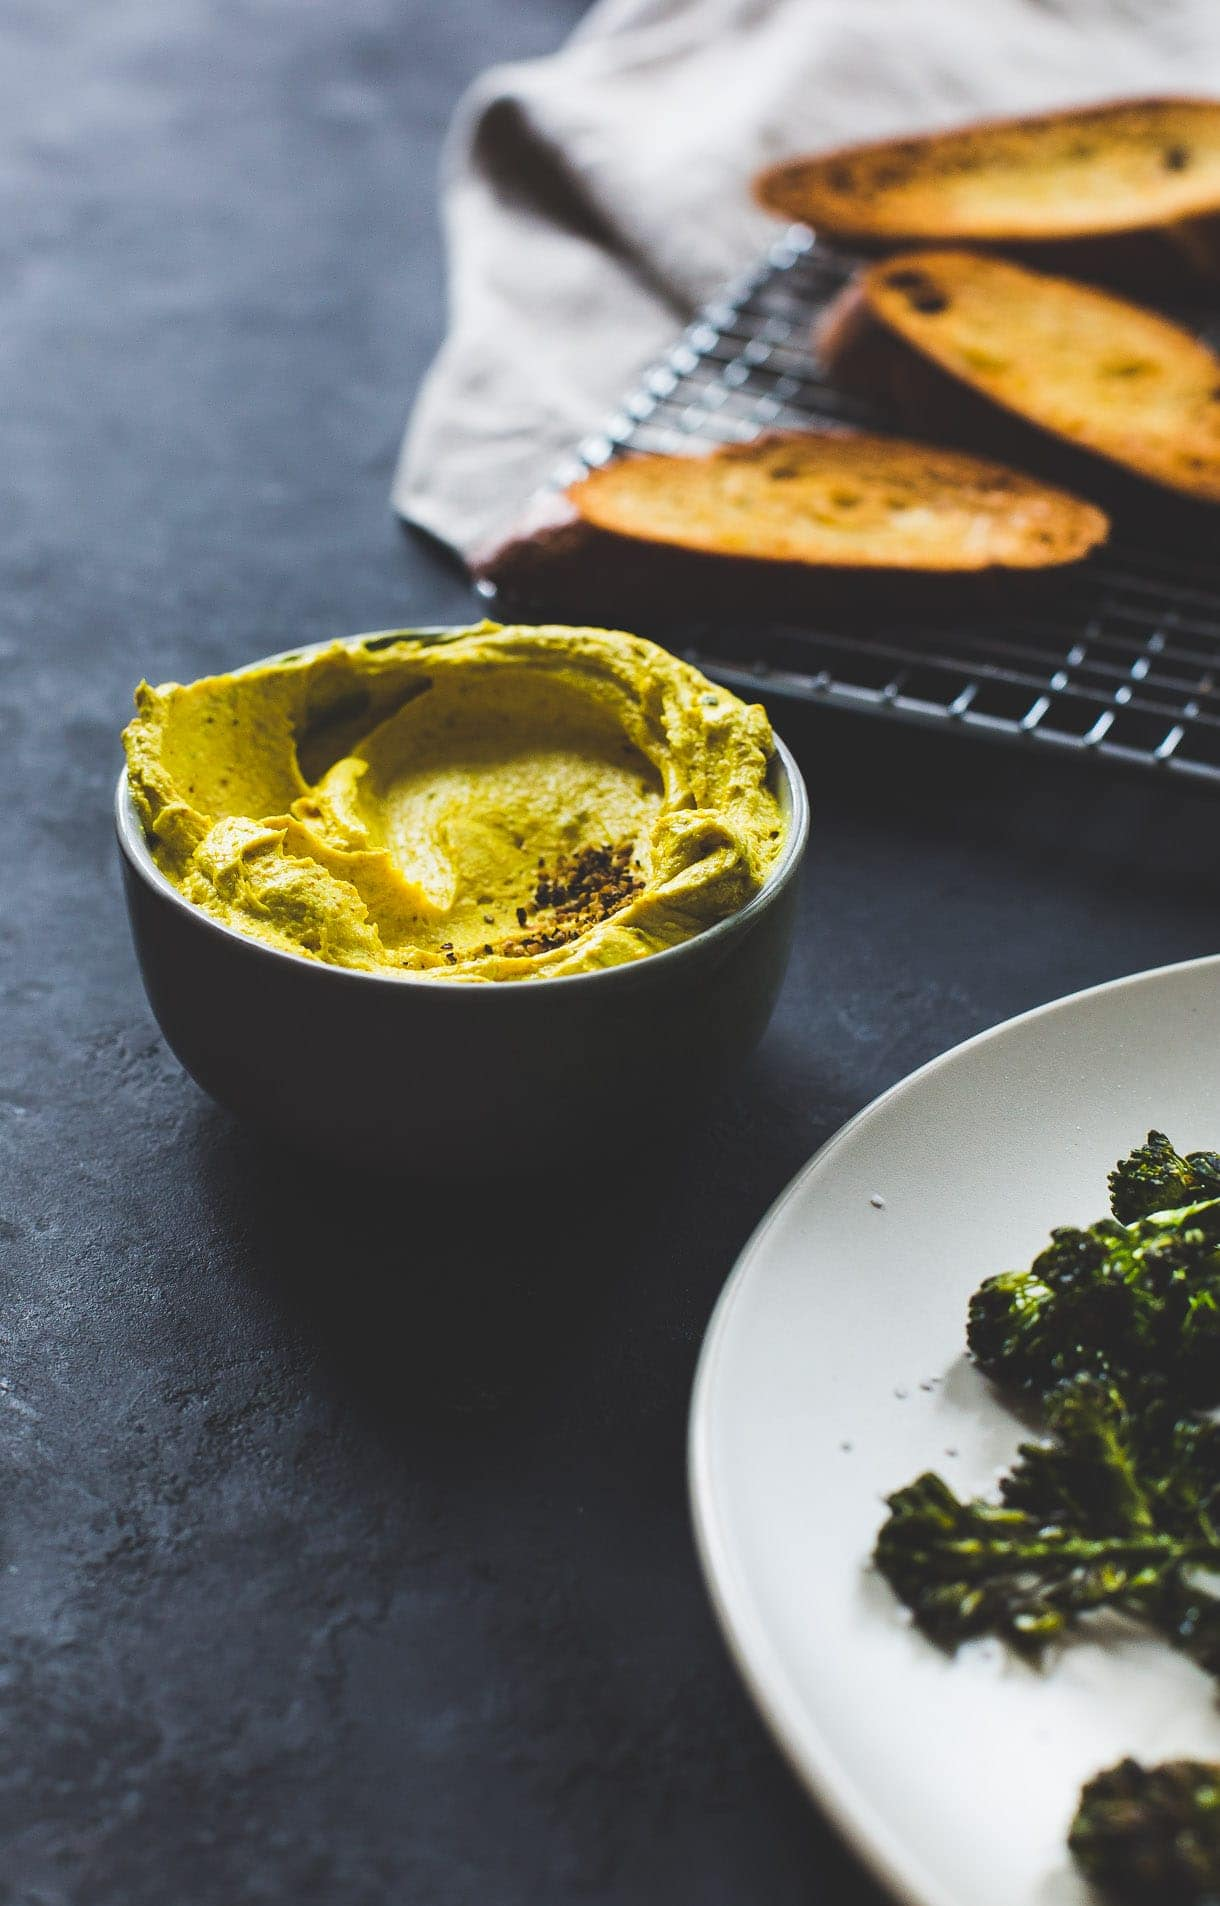 healthy appetizer: Roasted Broccoli and Turmeric Goat Cheese